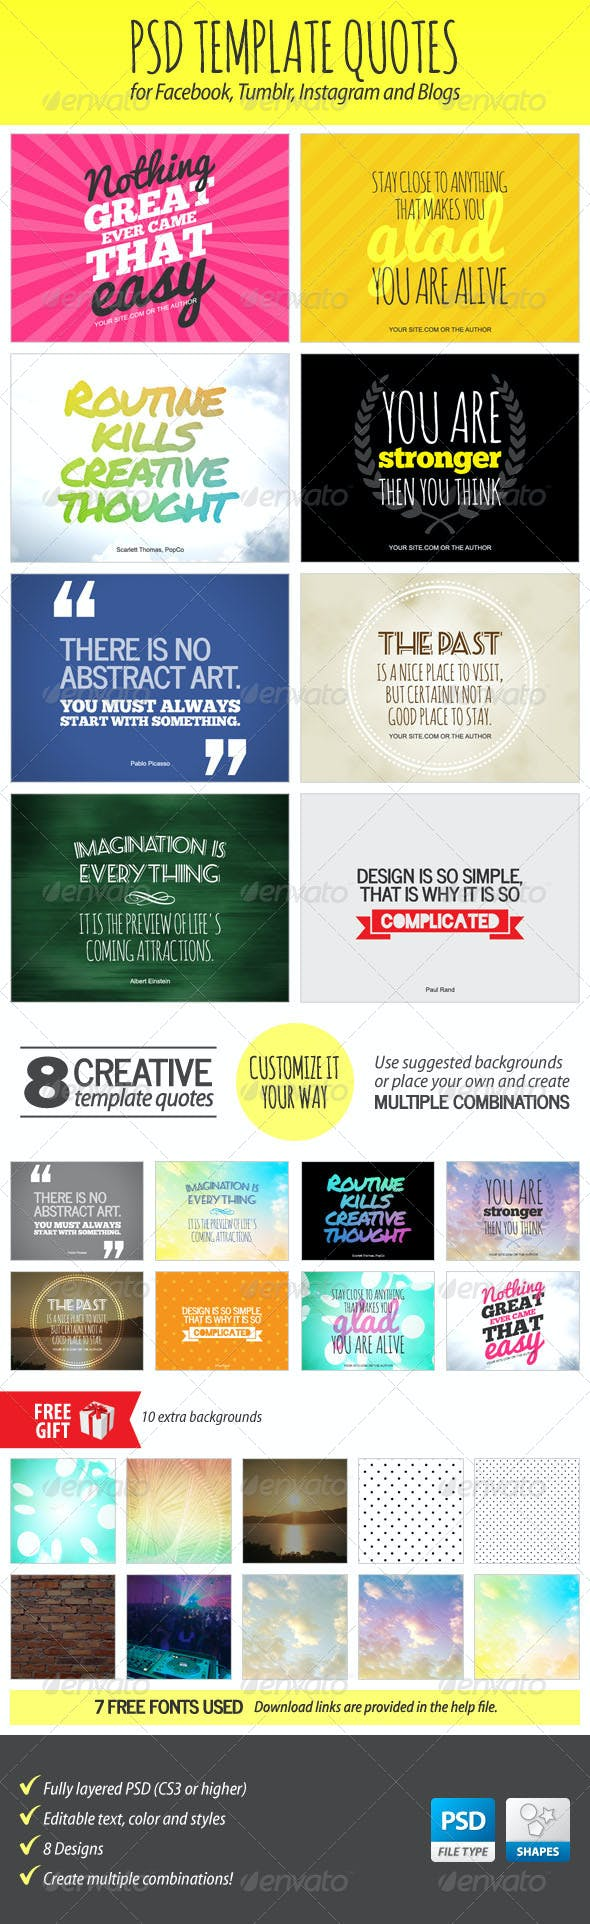 PSD Template Quotes By Stoat